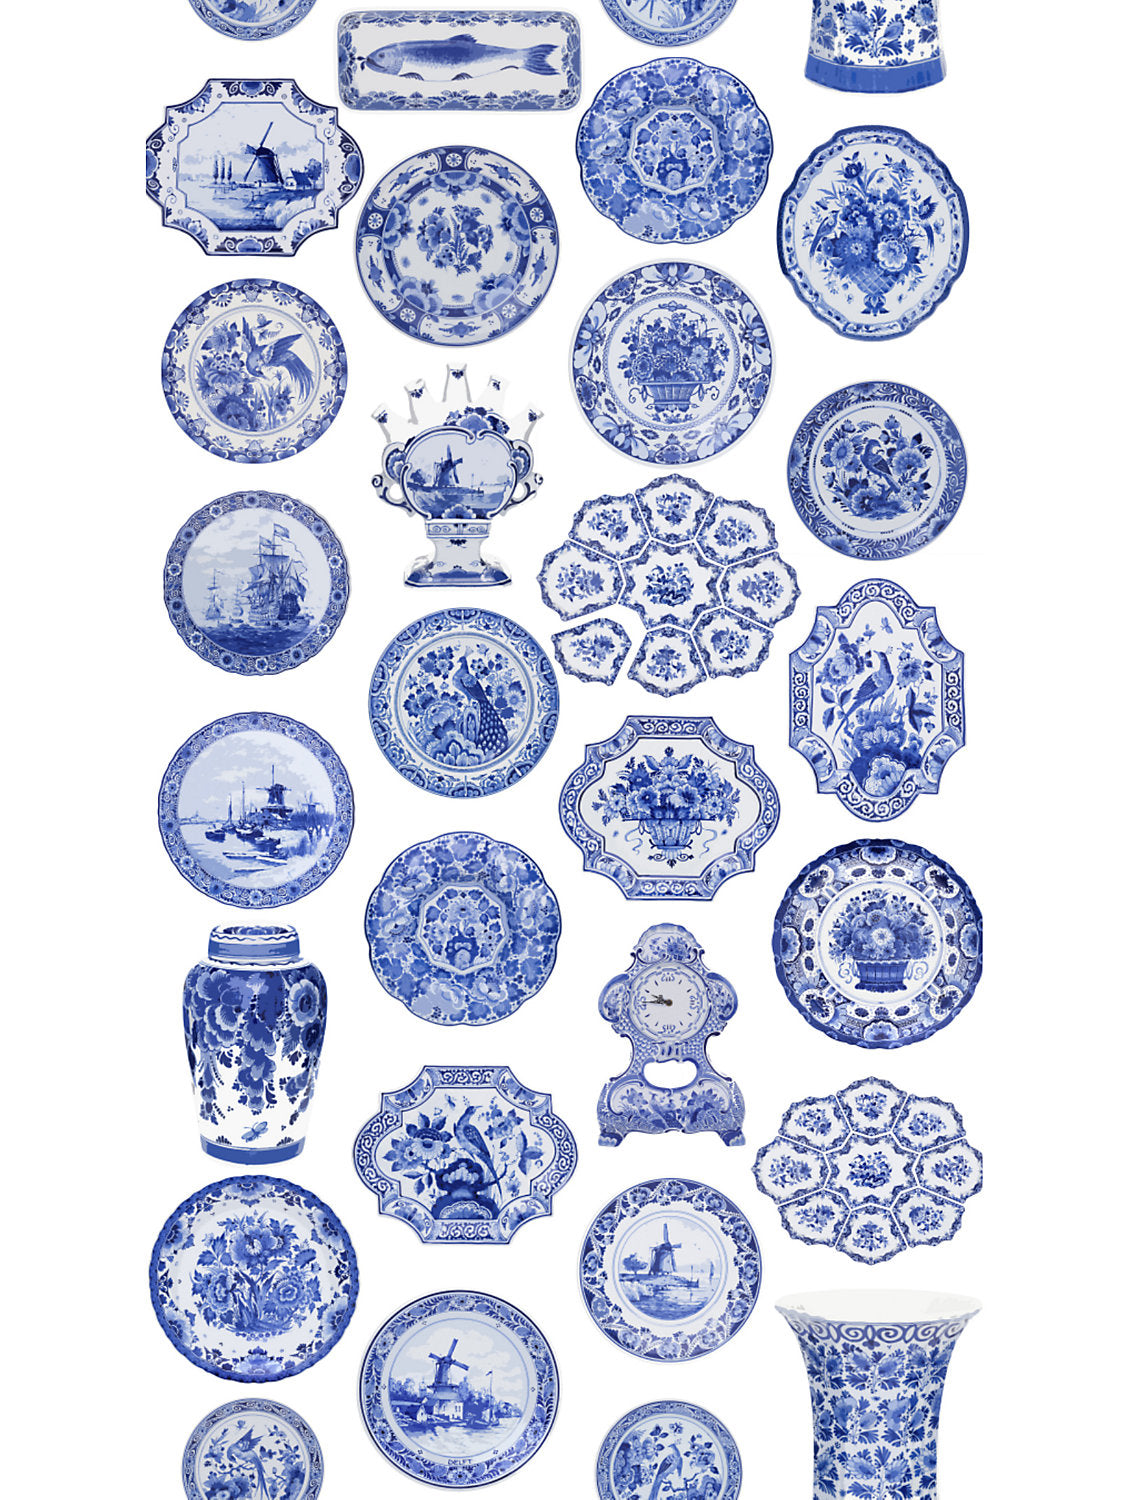 Collections Blue Wallpaper - nicolettemayer.shop